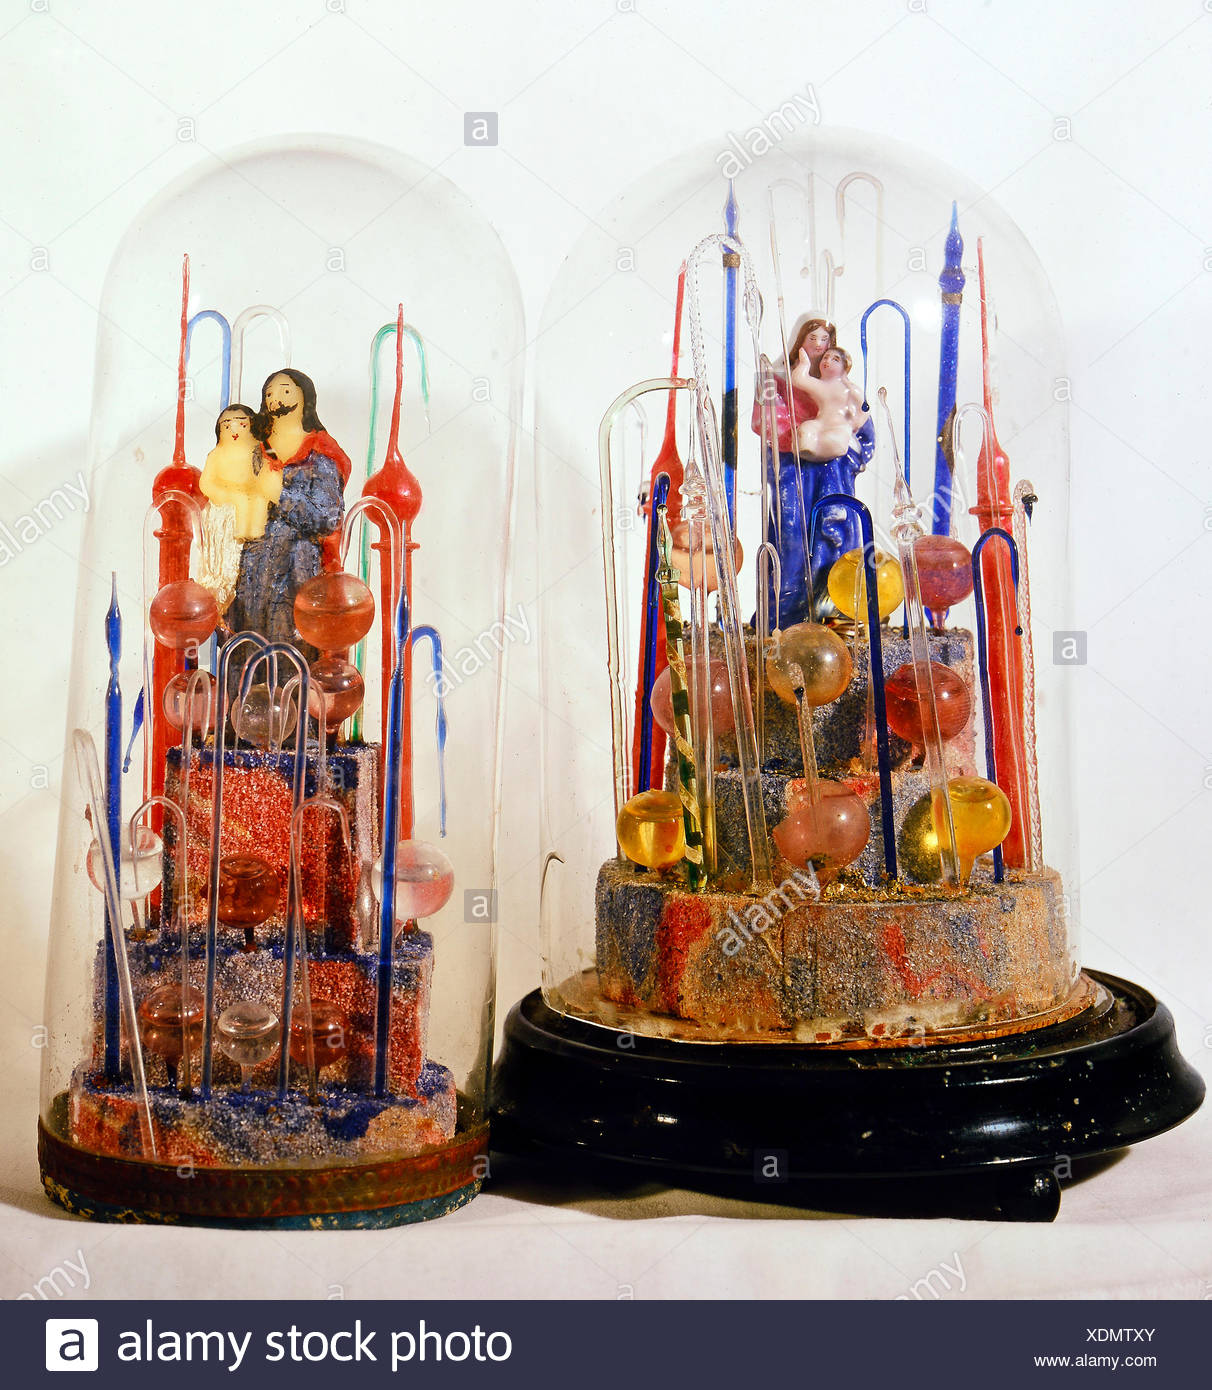 fine arts, folk art, devotional thing, Madonna and Saint Joseph with child under glass covers, glass, wax, Bavaria / Bohemia, early 19th century, Berchtesgaden, Rupert Stoeckl collection, Munich, Artist's Copyright has not to be cleared - Stock Image